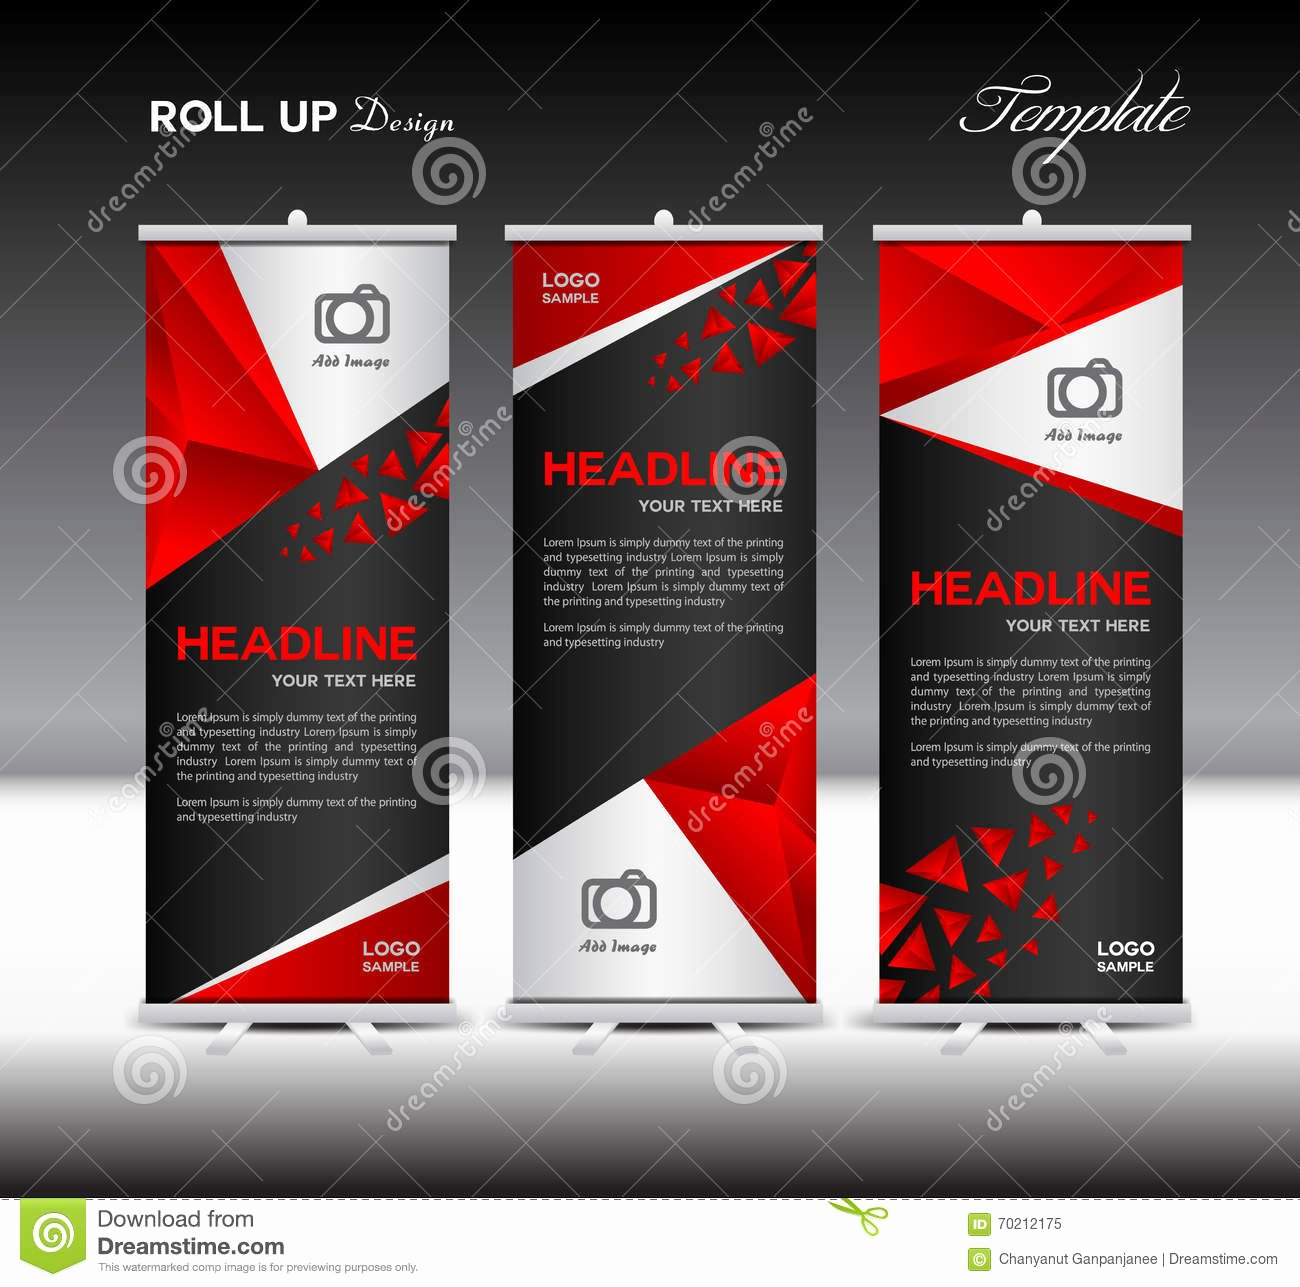 Roll Up Banner Template New Red Roll Up Banner Template Vector Illustration Banner